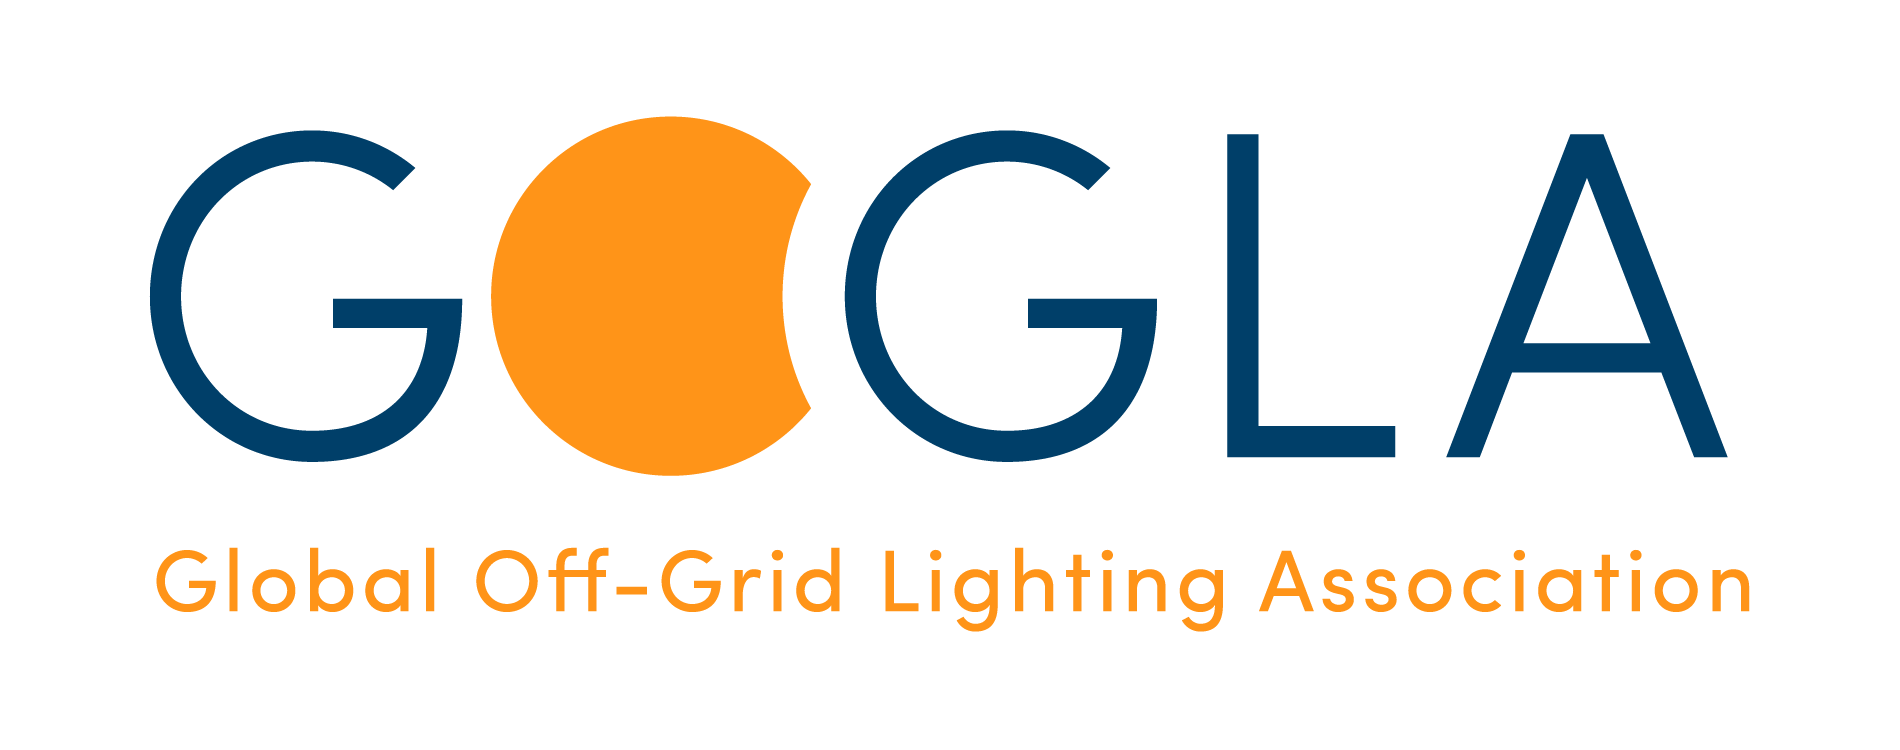 Global Off-Grid Lighting Association (GOGLA)